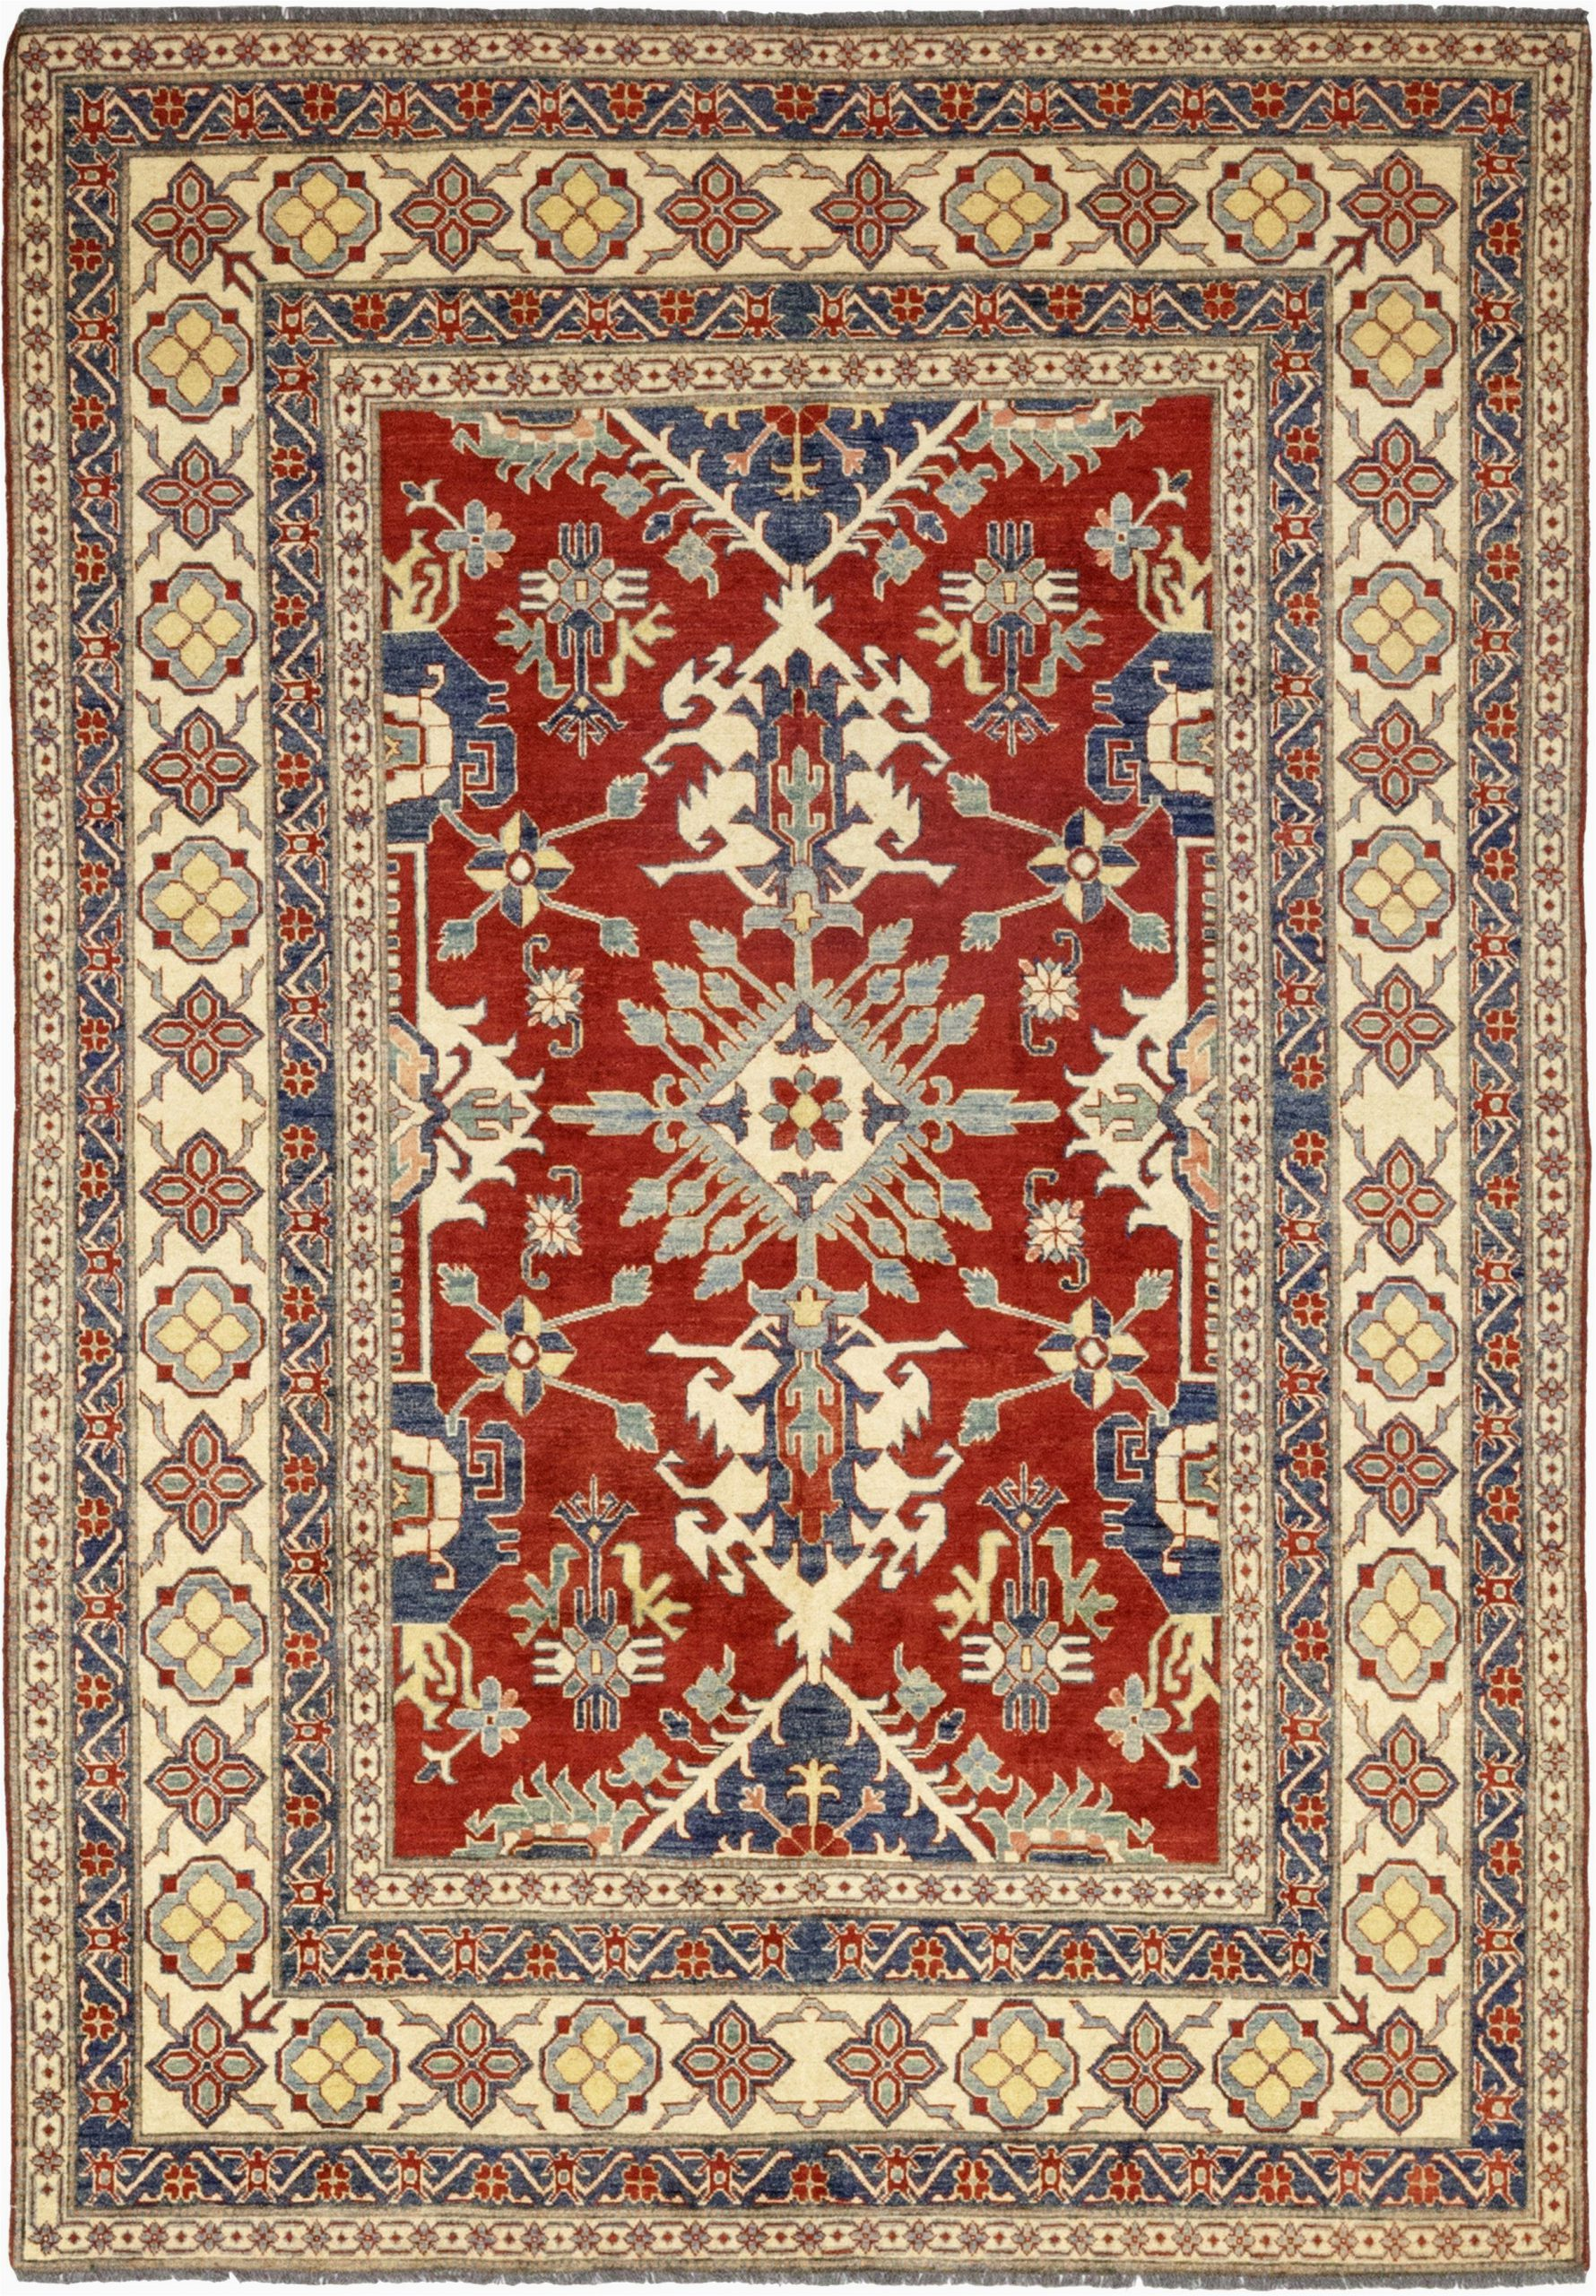 8 X 12 area Rugs Lowes ✓ Lowes area Rugs Clearance – Modern Rugs Popular Design